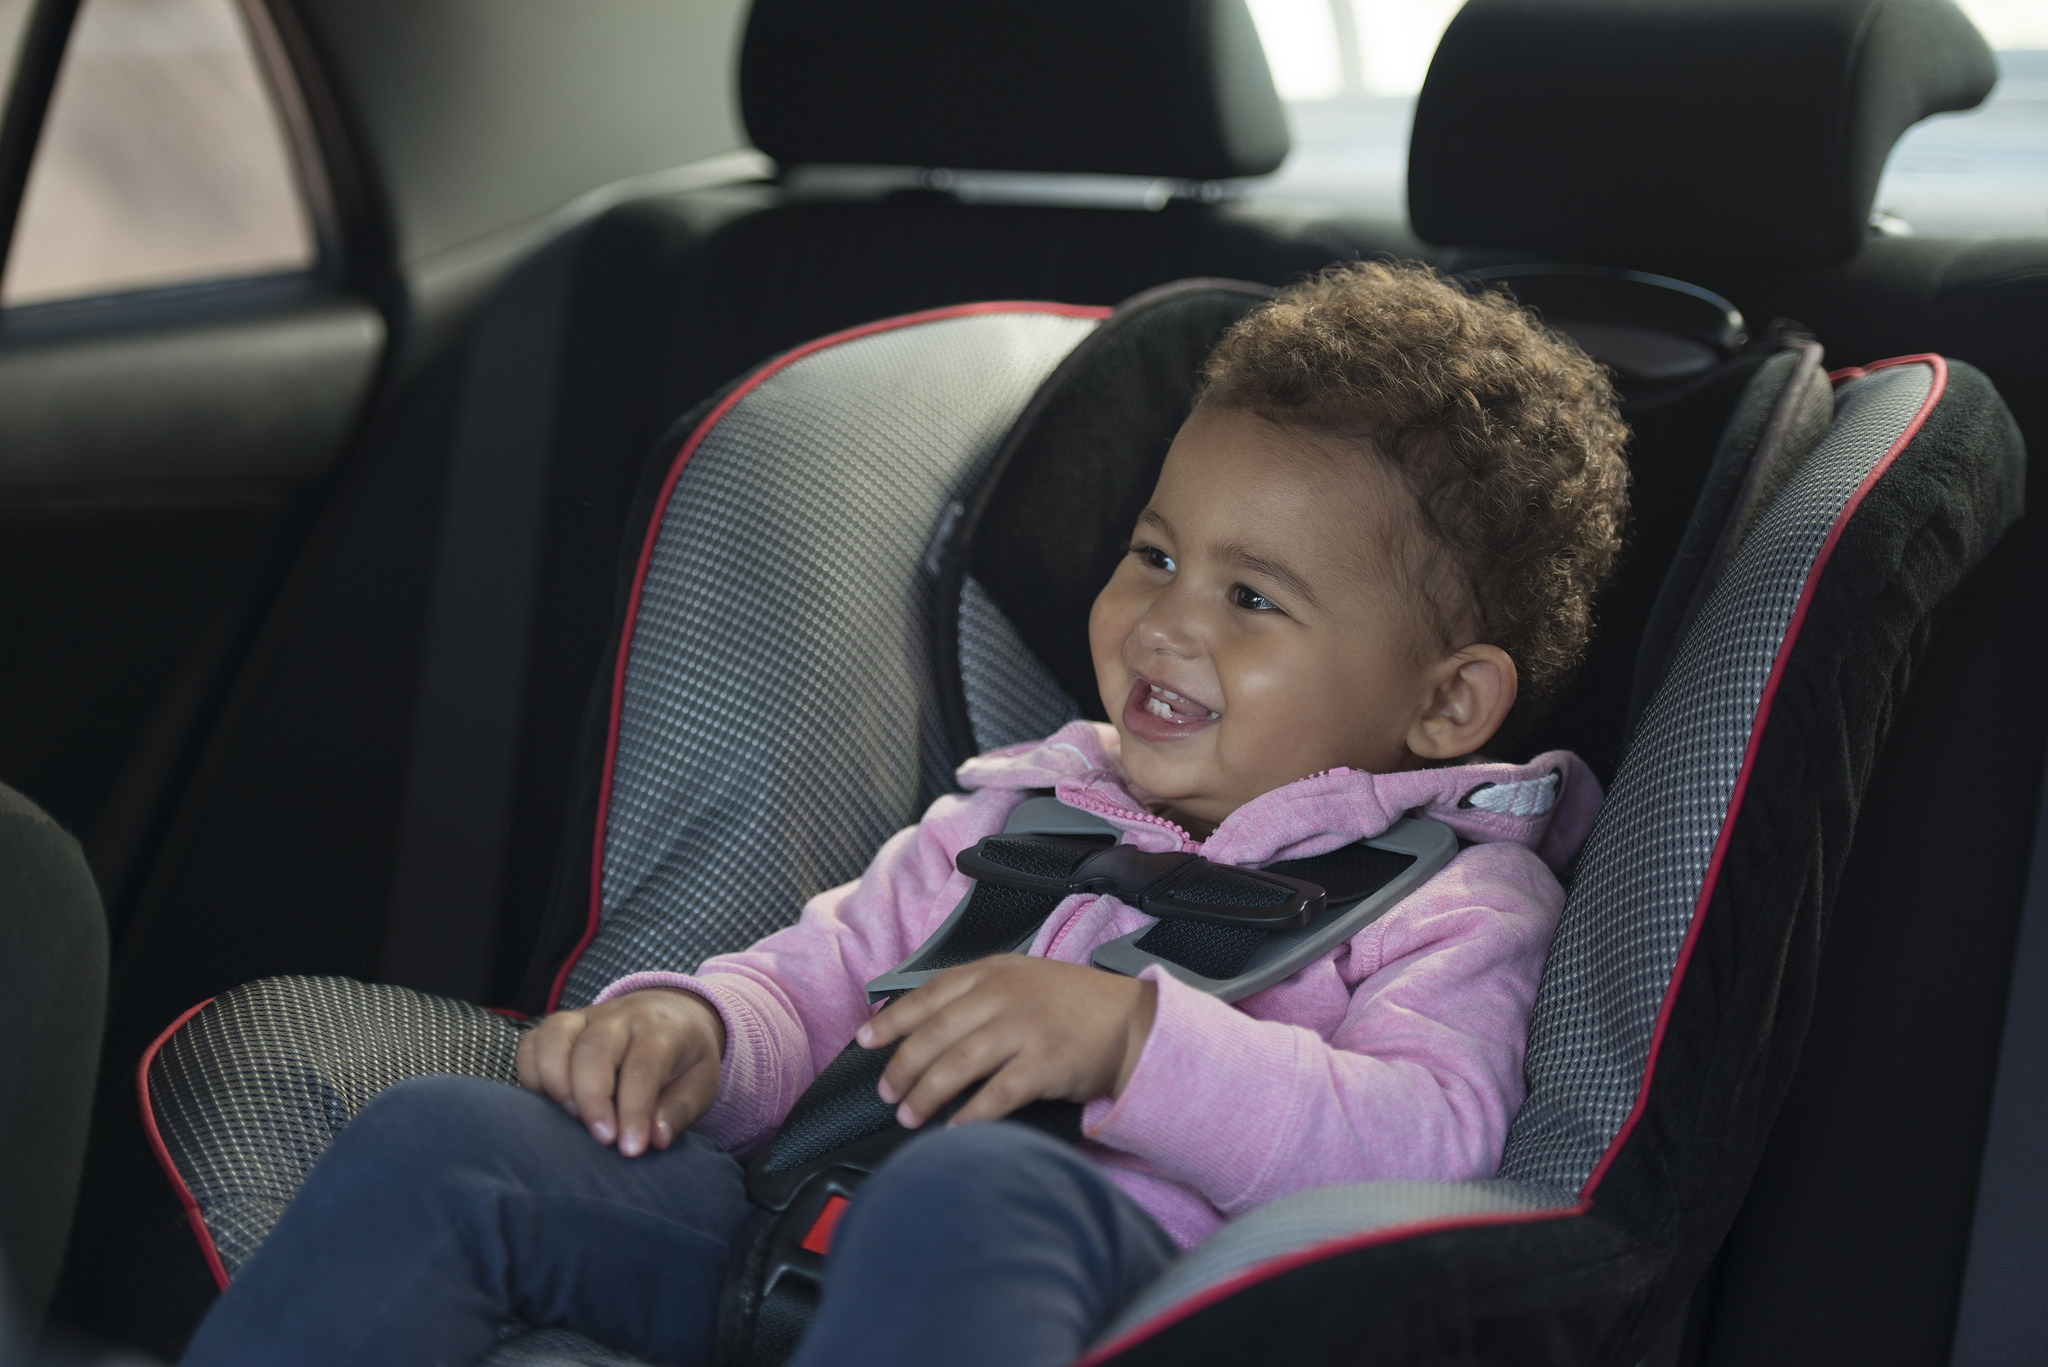 How To Deal With A Screaming Toddler In The Car The News